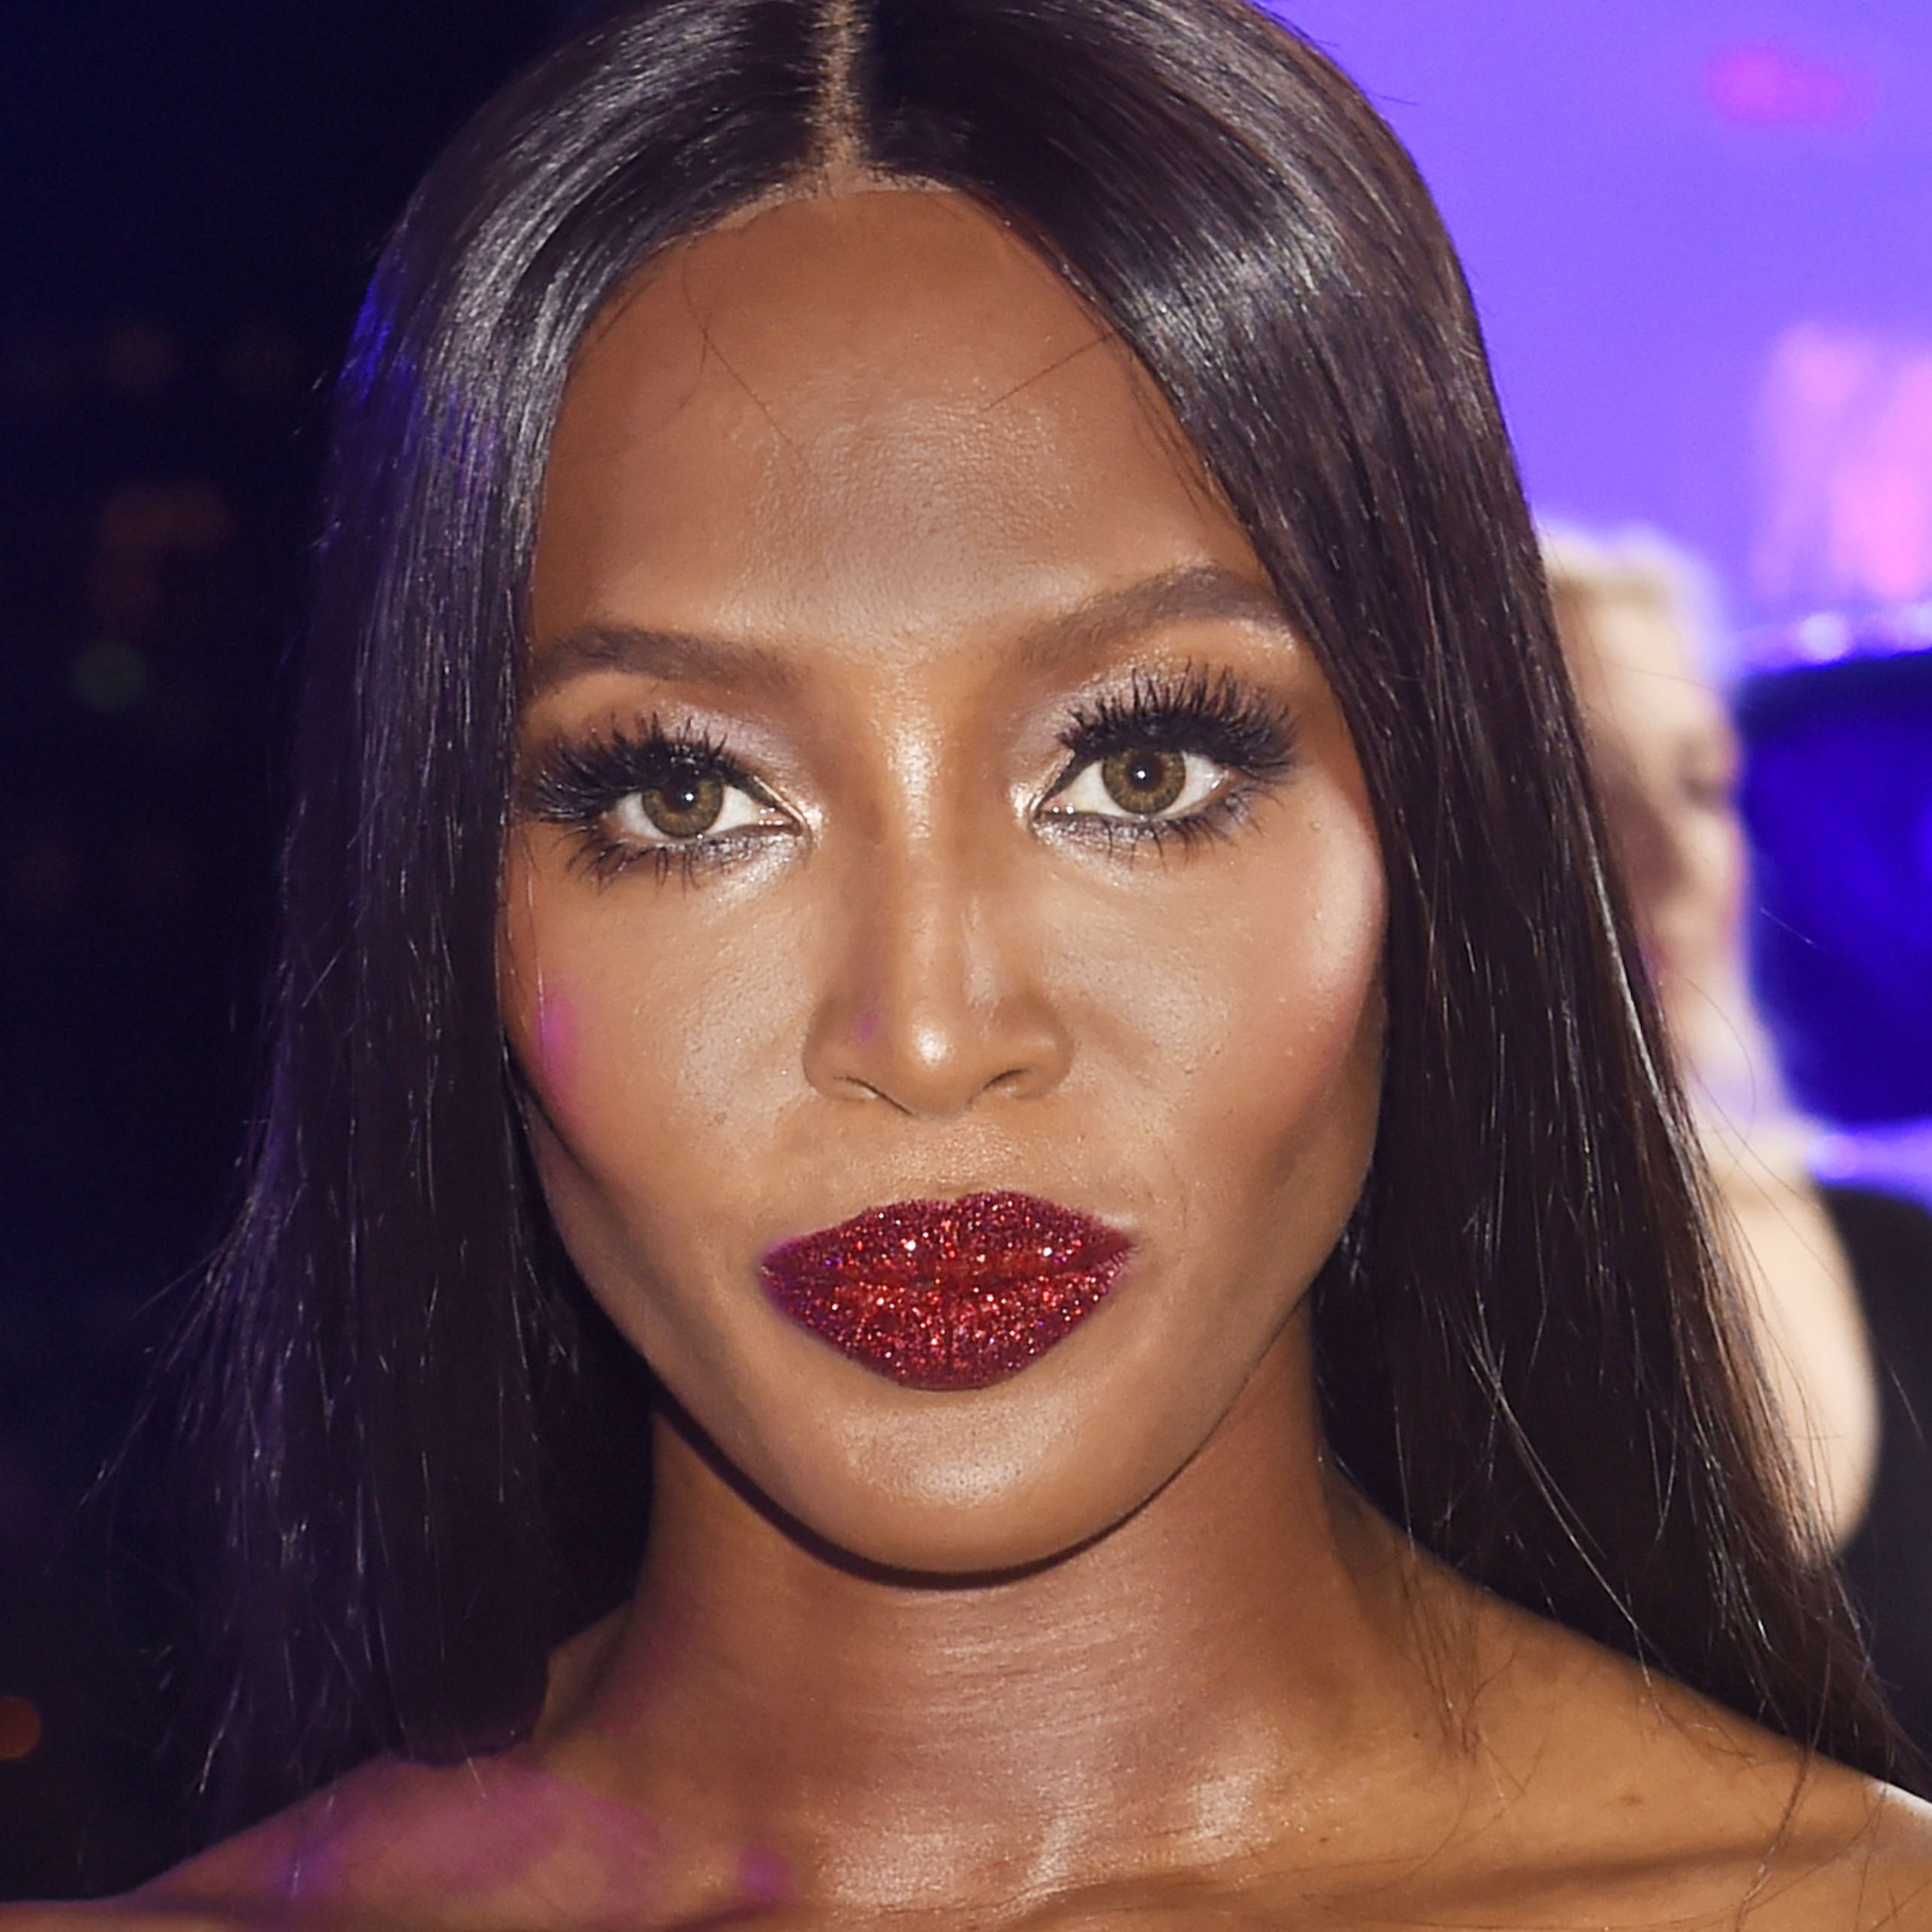 """<p>Since her majesty Pat McGrath unveiled her <a href=""""http://www.marieclaire.com/beauty/news/a21939/pat-mcgrath-004-glitter-lip-kit/"""" target=""""_blank"""">#LUST004 lip kits</a>—teaming creamy matte lip shades and&nbsp&#x3B;micro-fine glitter together—sparkly lips have been seen *everywhere*—from the Versace runway to the VMAs red carpet (on Naomi Campbell no less). As conceptual as they are, they're relatively&nbsp&#x3B;easy to achieve. Just paint on your red lip, apply a thin coat of gloss, and then press the glitter carefully on the lips. If you don't want to go full-pout with the sparkles, try the&nbsp&#x3B;""""crescendo of glitter"""" McGrath applied at <a href=""""http://www.marieclaire.com/fashion/news/a22635/shag-marry-kill-ss17/"""" target=""""_blank"""">DKNY Spring 2017</a>.<span class=""""redactor-invisible-space"""" data-verified=""""redactor"""" data-redactor-tag=""""span"""" data-redactor-class=""""redactor-invisible-space""""></span></p>"""